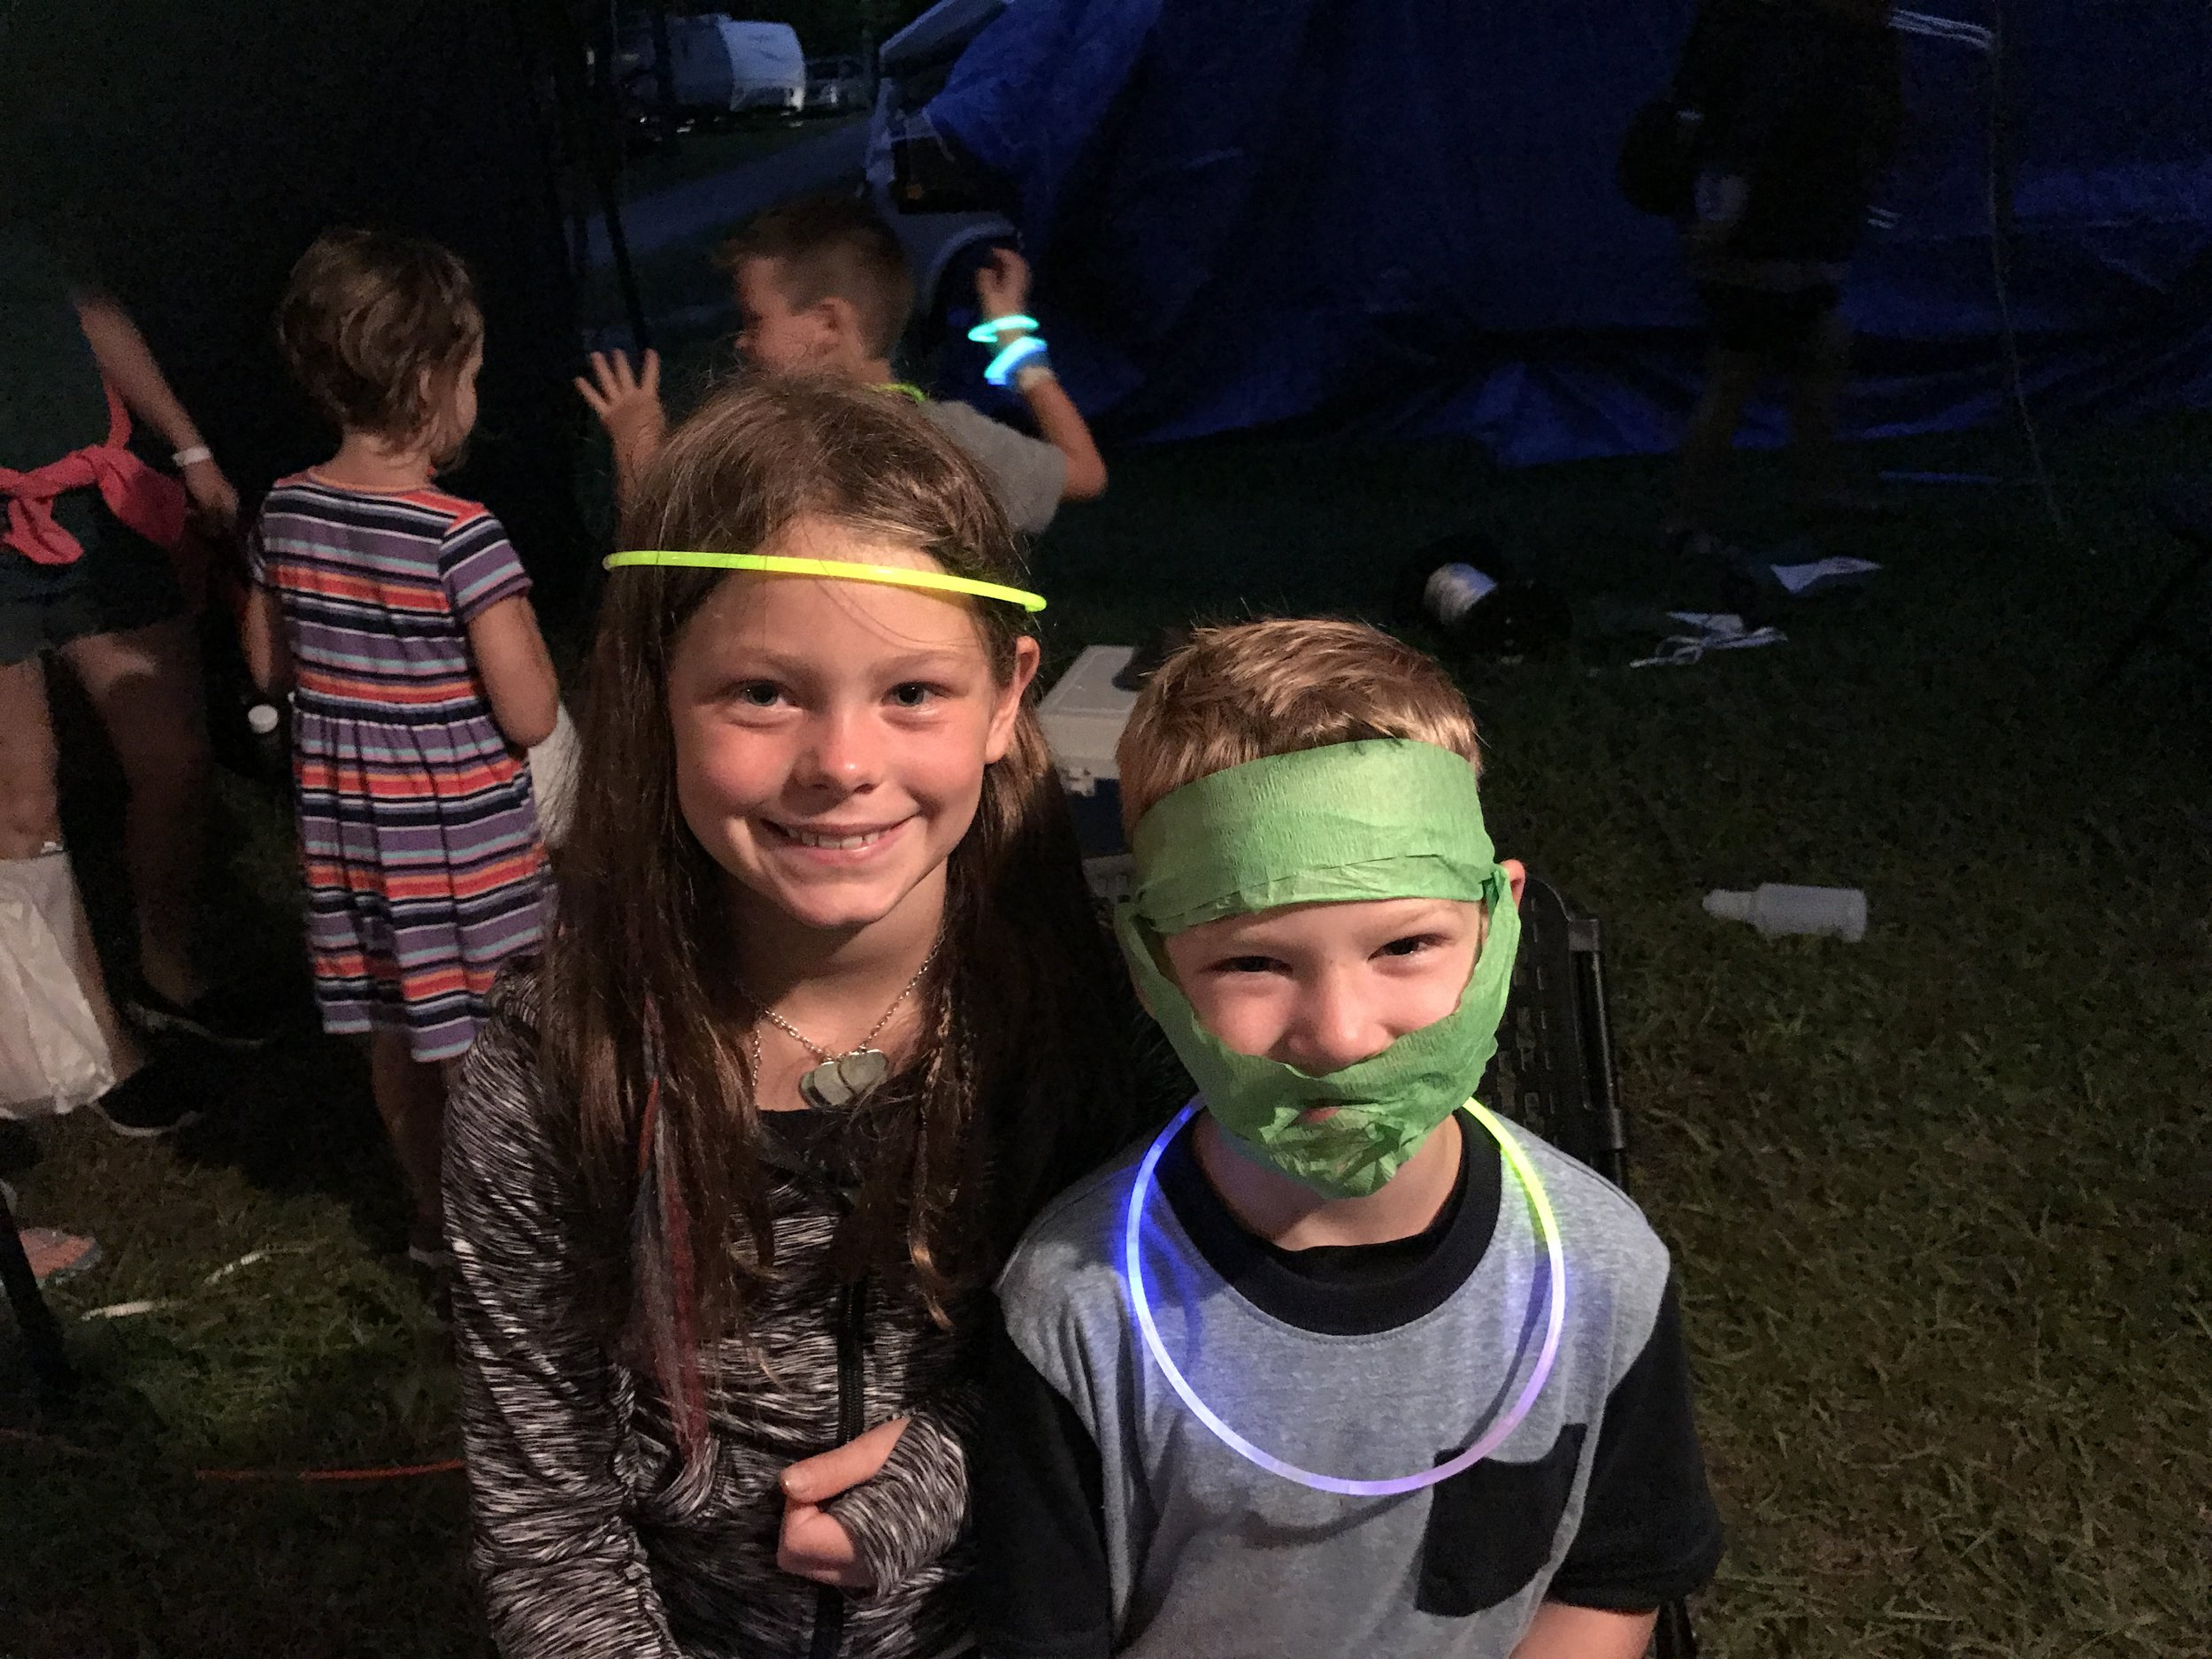 Loving the glow stick and streamer life.